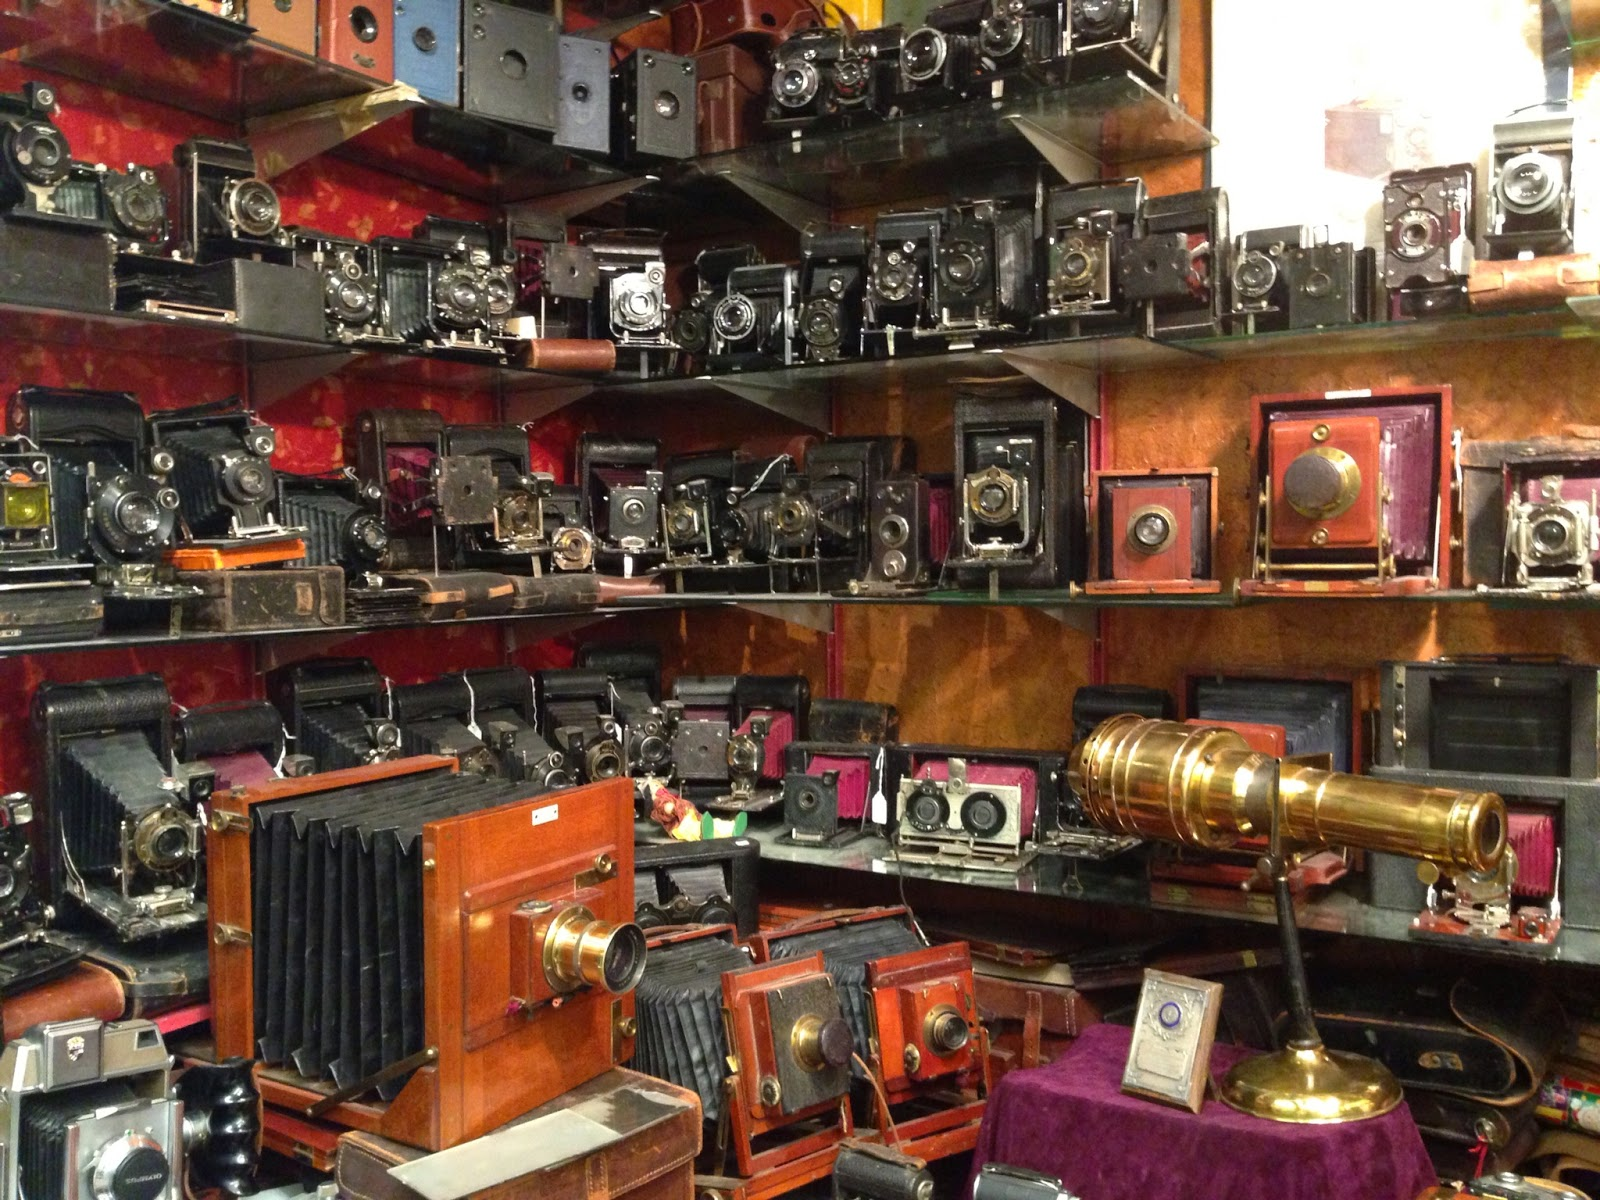 Vintage cameras at Portobello Market, London